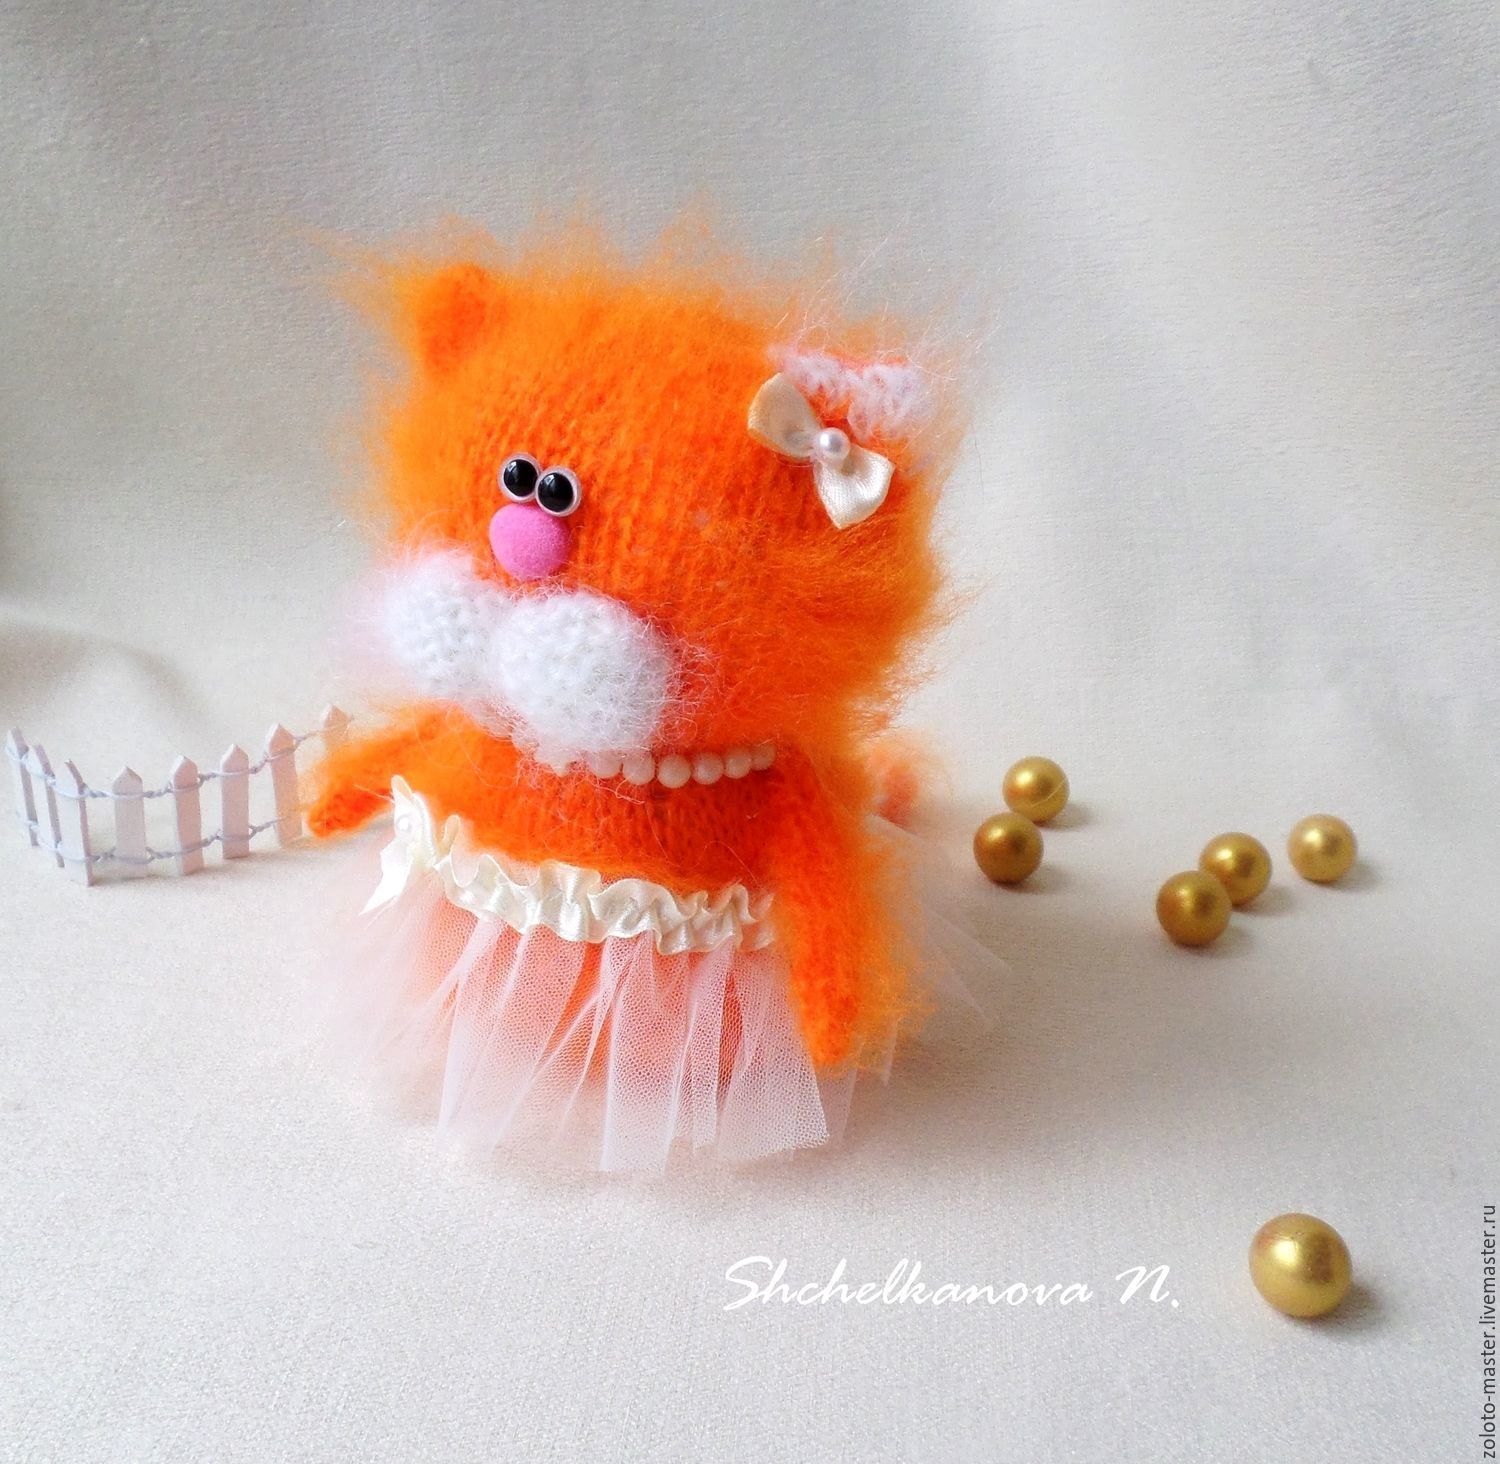 Kitty Quot Red Haired Quot Interior Toy Shop Online On